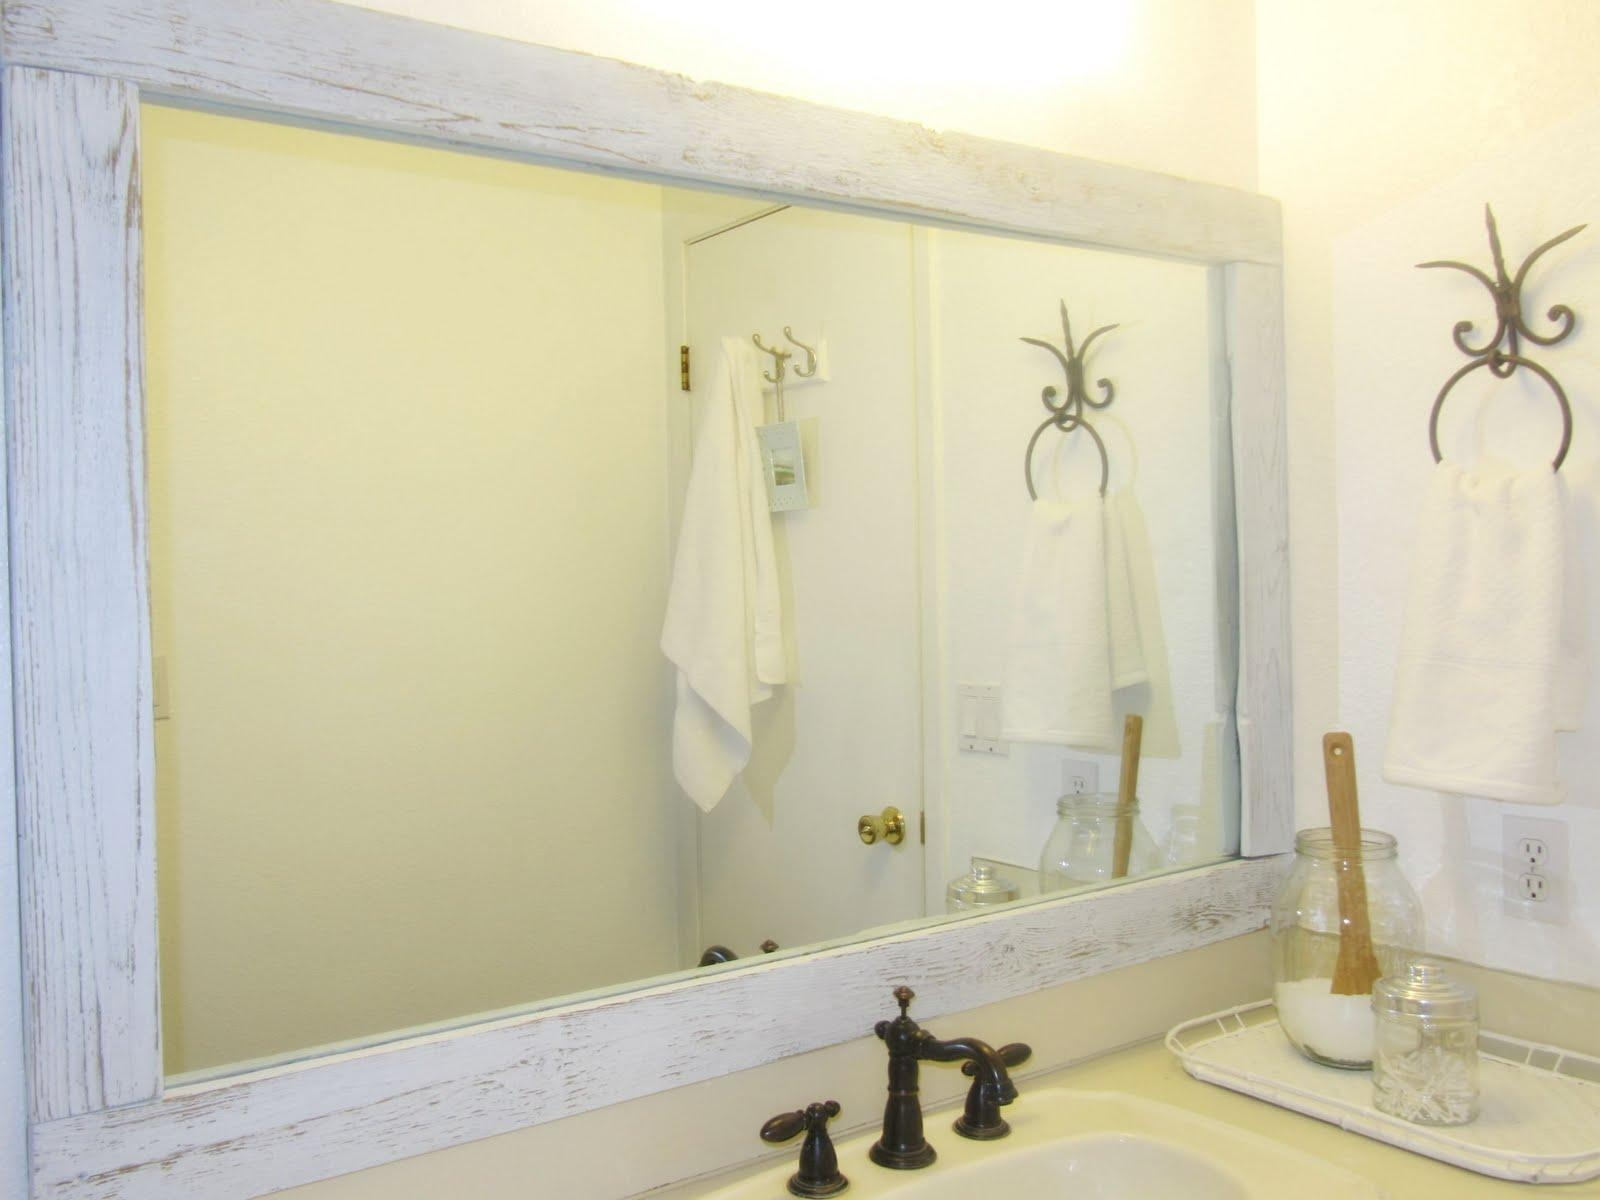 Bathroom : Superb Framed Bathroom Mirror Ideas Large Wall Mirrors Pertaining To Wall Mirrors For Bathrooms (Image 2 of 20)